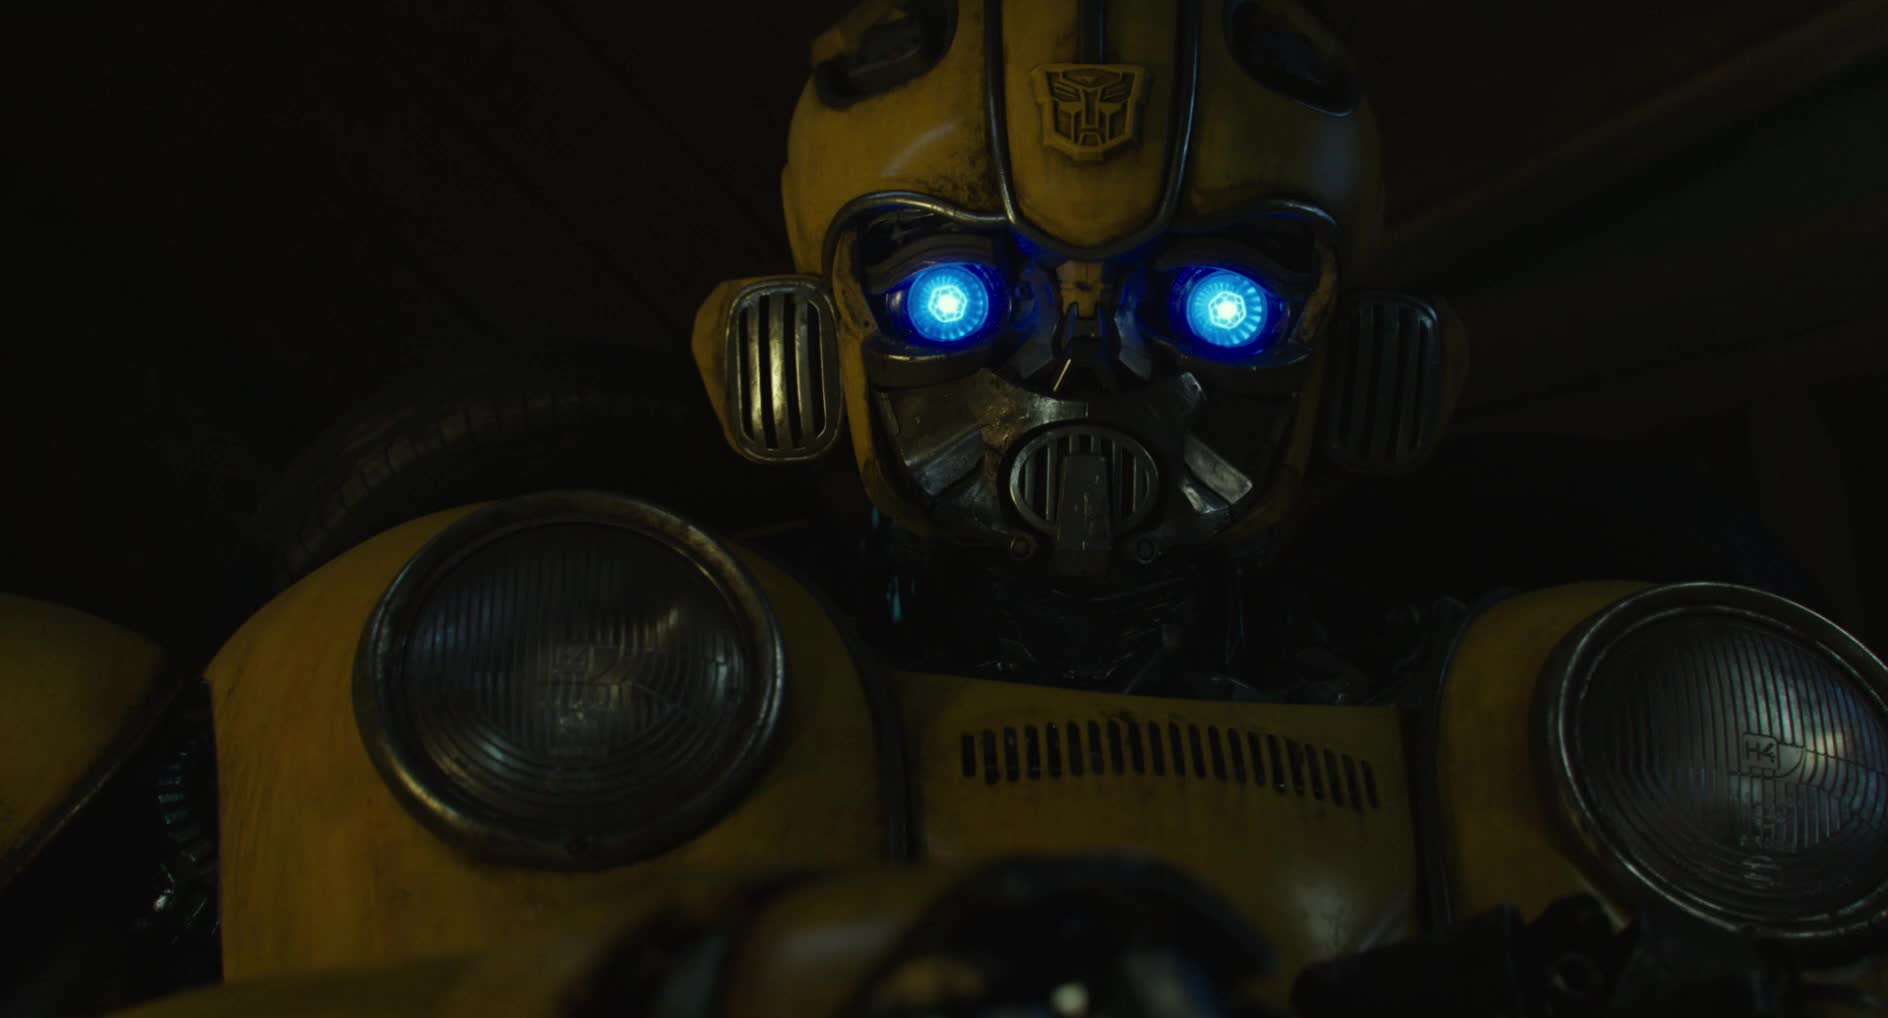 bumble bee, bumblebee, bumblebee movie, bumblebeemovie, face, feel, hailee steinfeld, hands, john cena, love, movie trailers, paramount, safe, touch, transformers, Safe hands GIFs